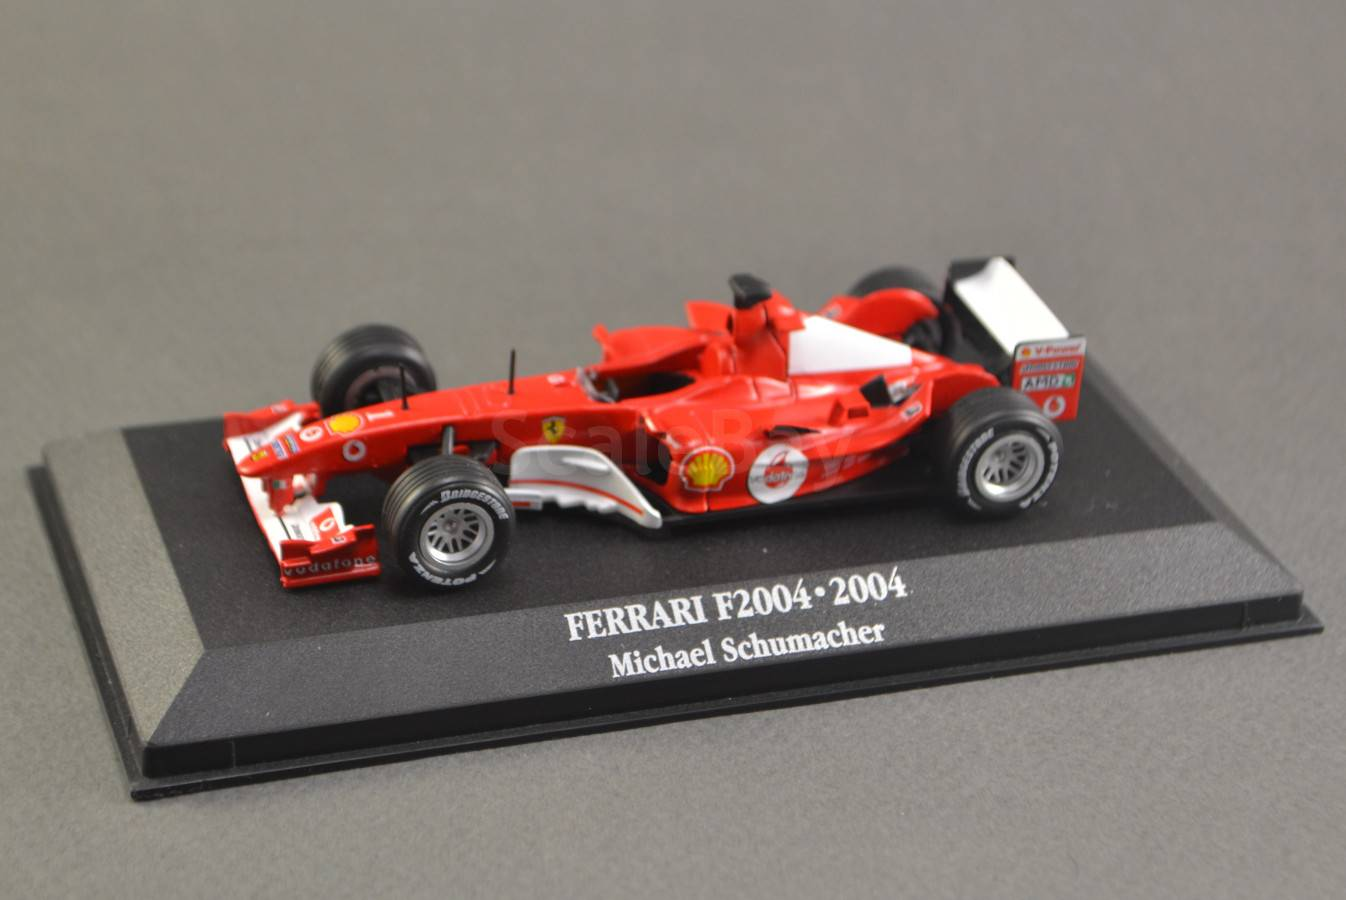 S Rublya 1 43 Michael Schumacher Ferrari F2004 1 World